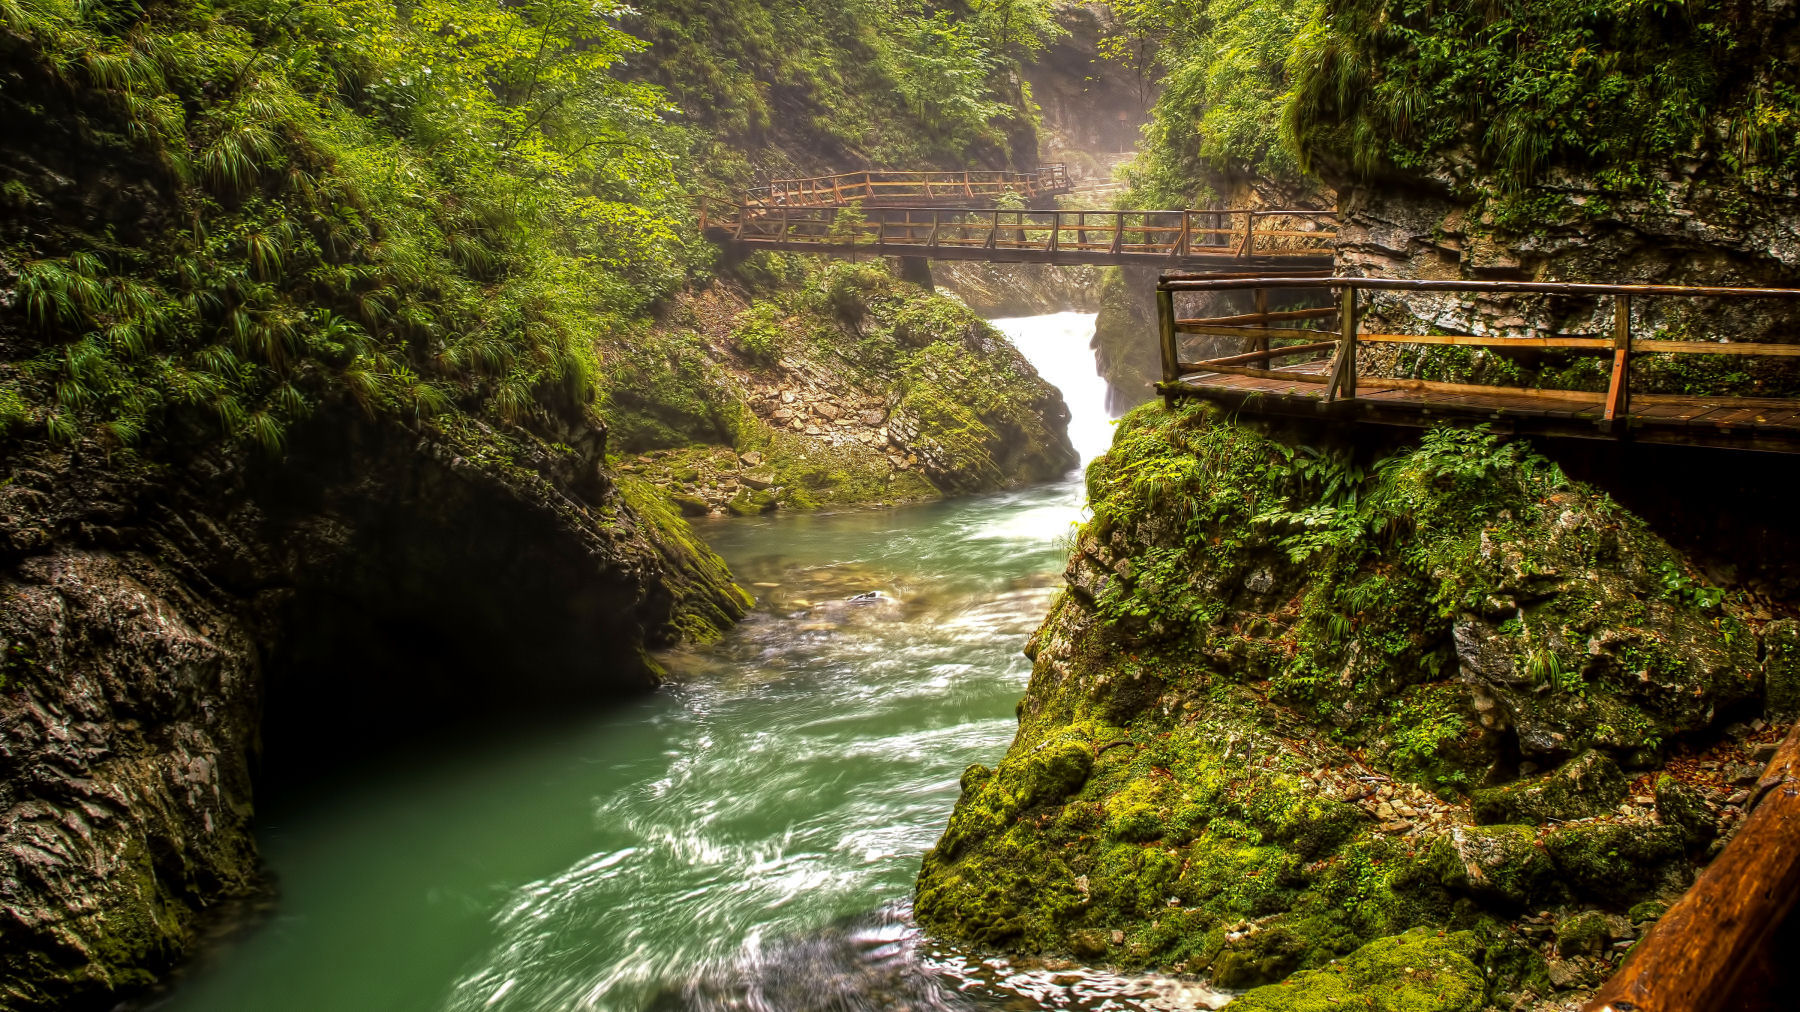 Even with inclement weather, Vintgar Gorge is a special treat